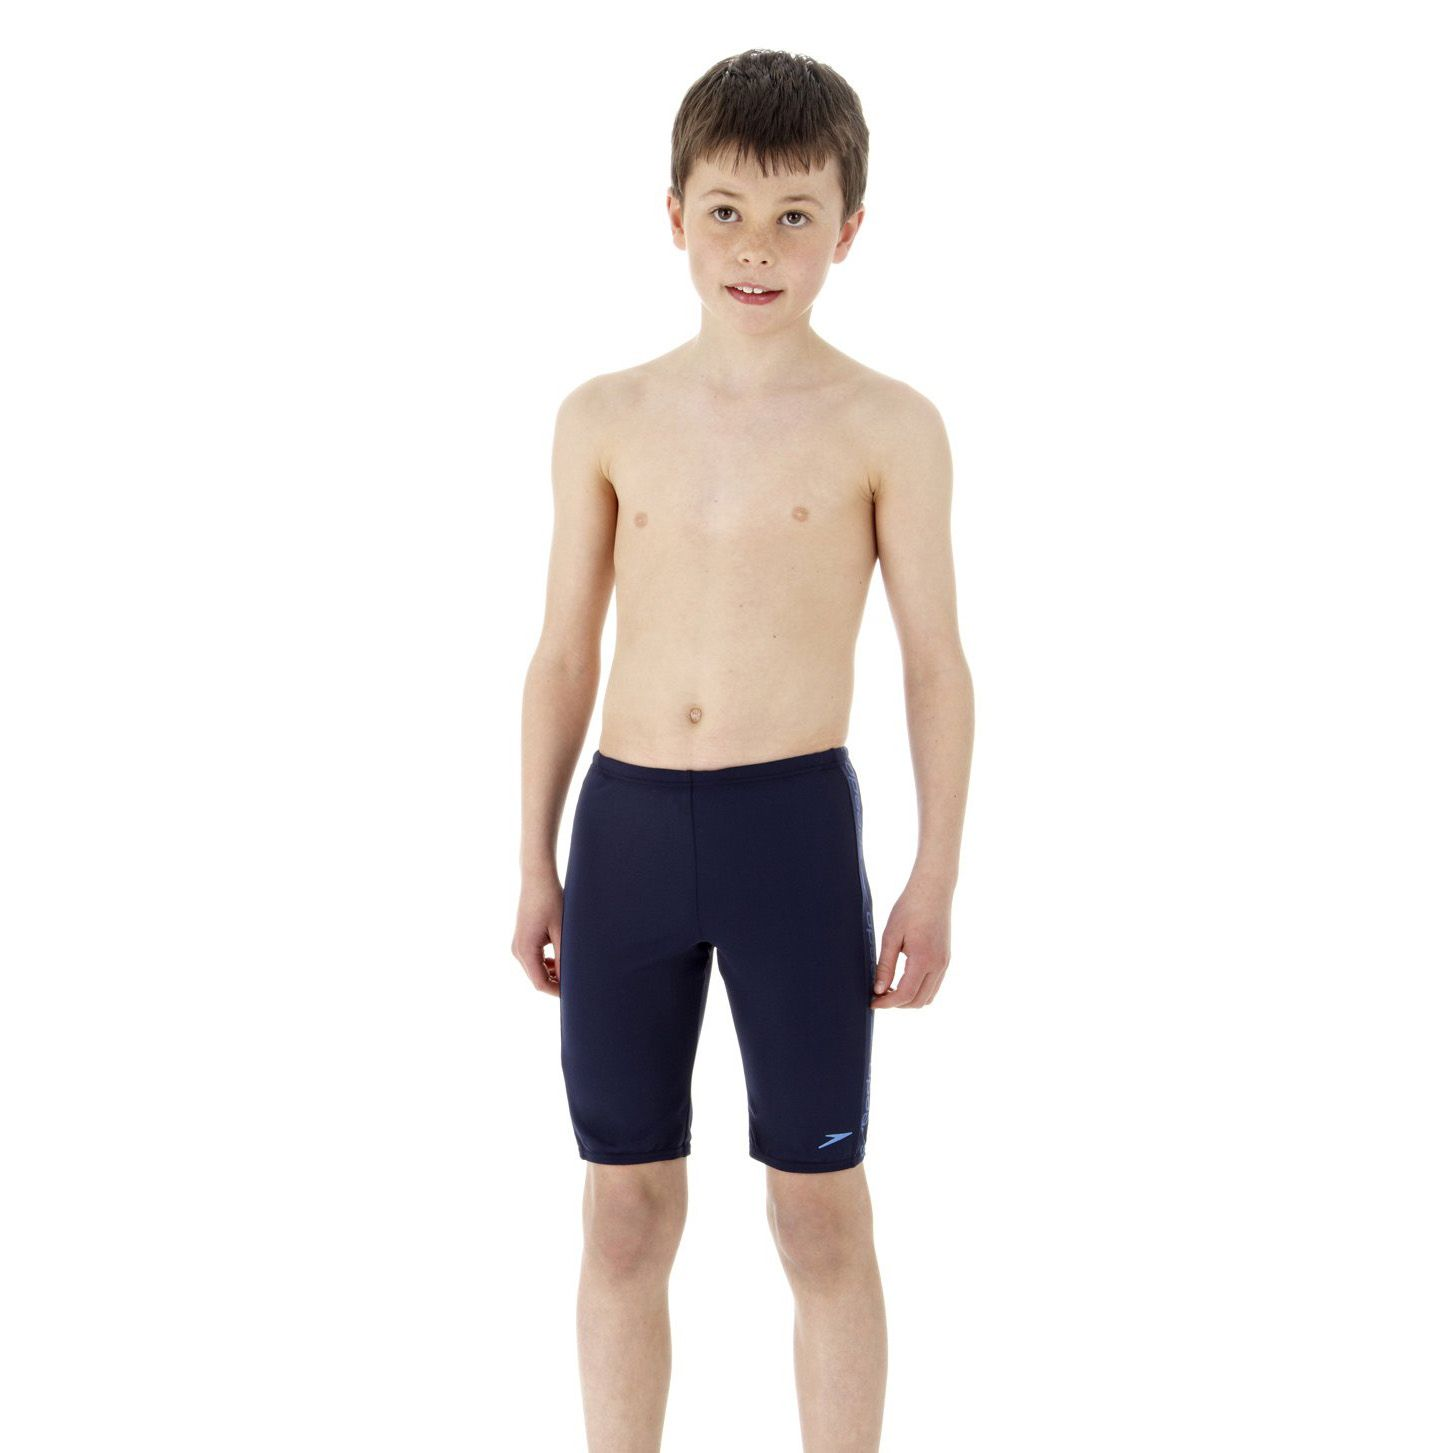 http://cdn.sweatband.com/speedo%20superiority%20boys%20jammer_speedo_superiority_boys_jammer_navy_1_2000x2000.jpg